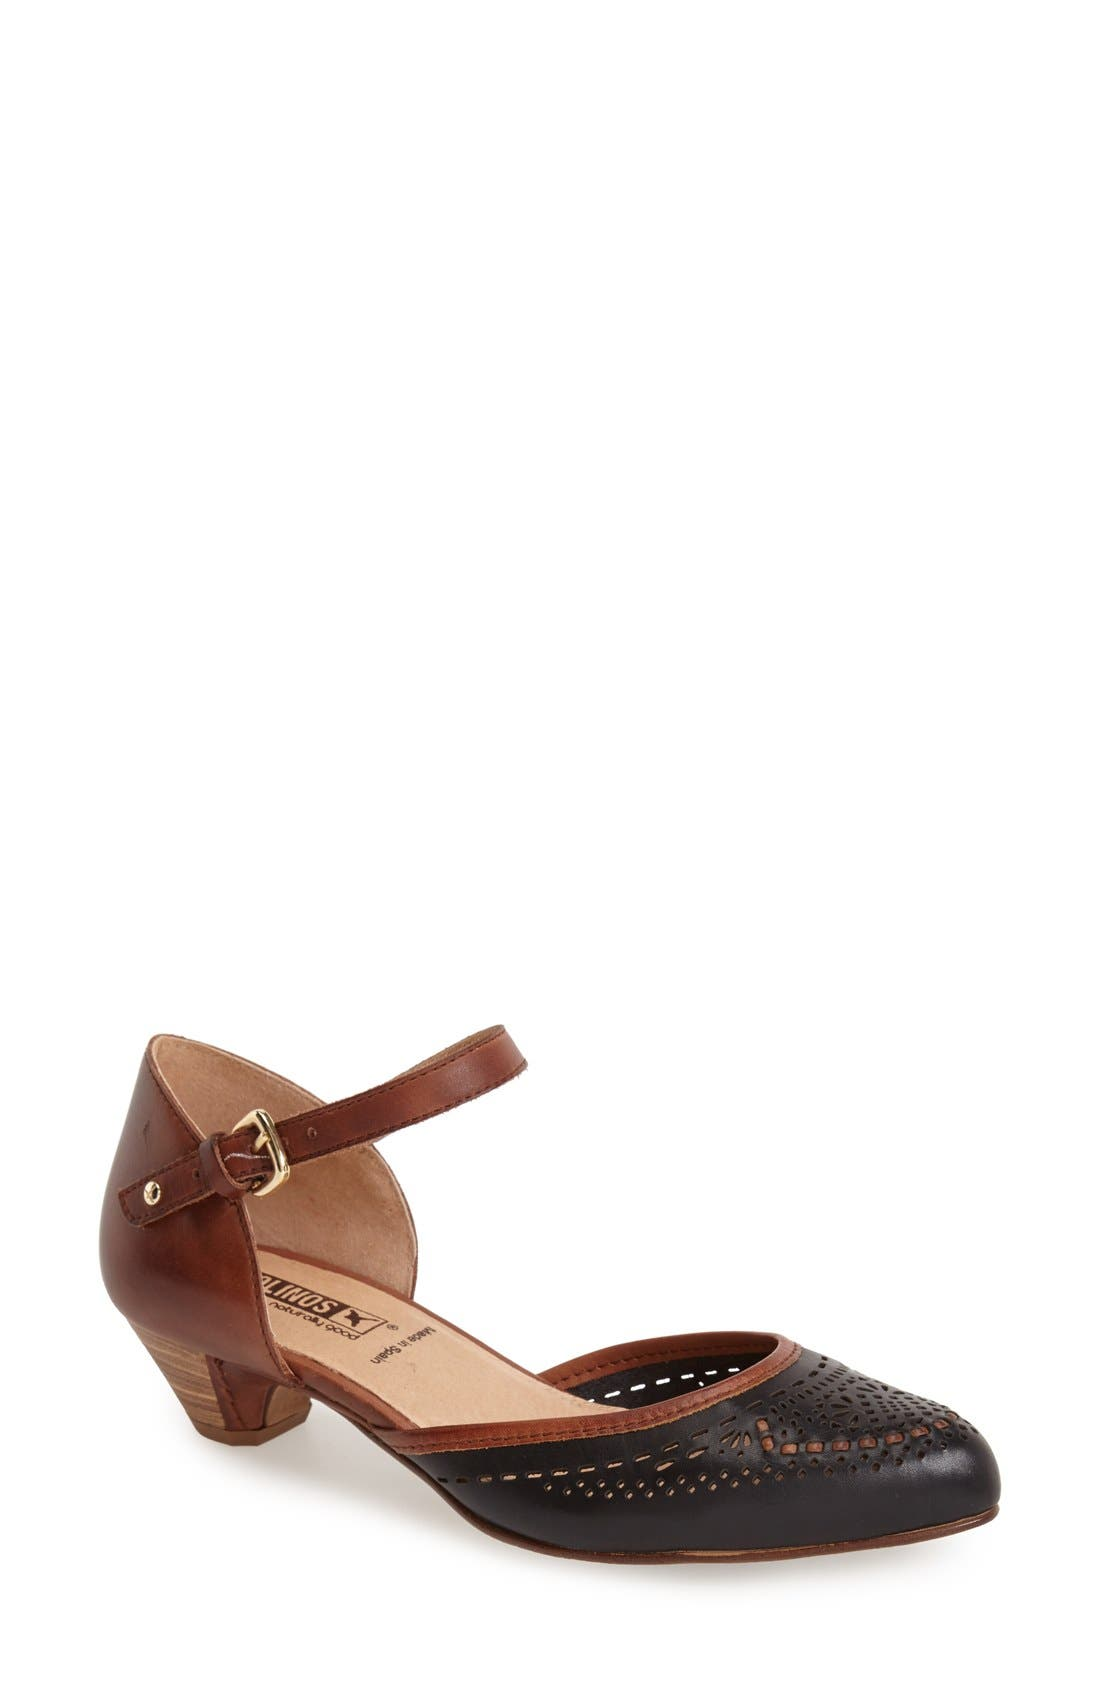 'Elba' Perforated Leather Ankle Strap Sandal,                         Main,                         color, Black Leather